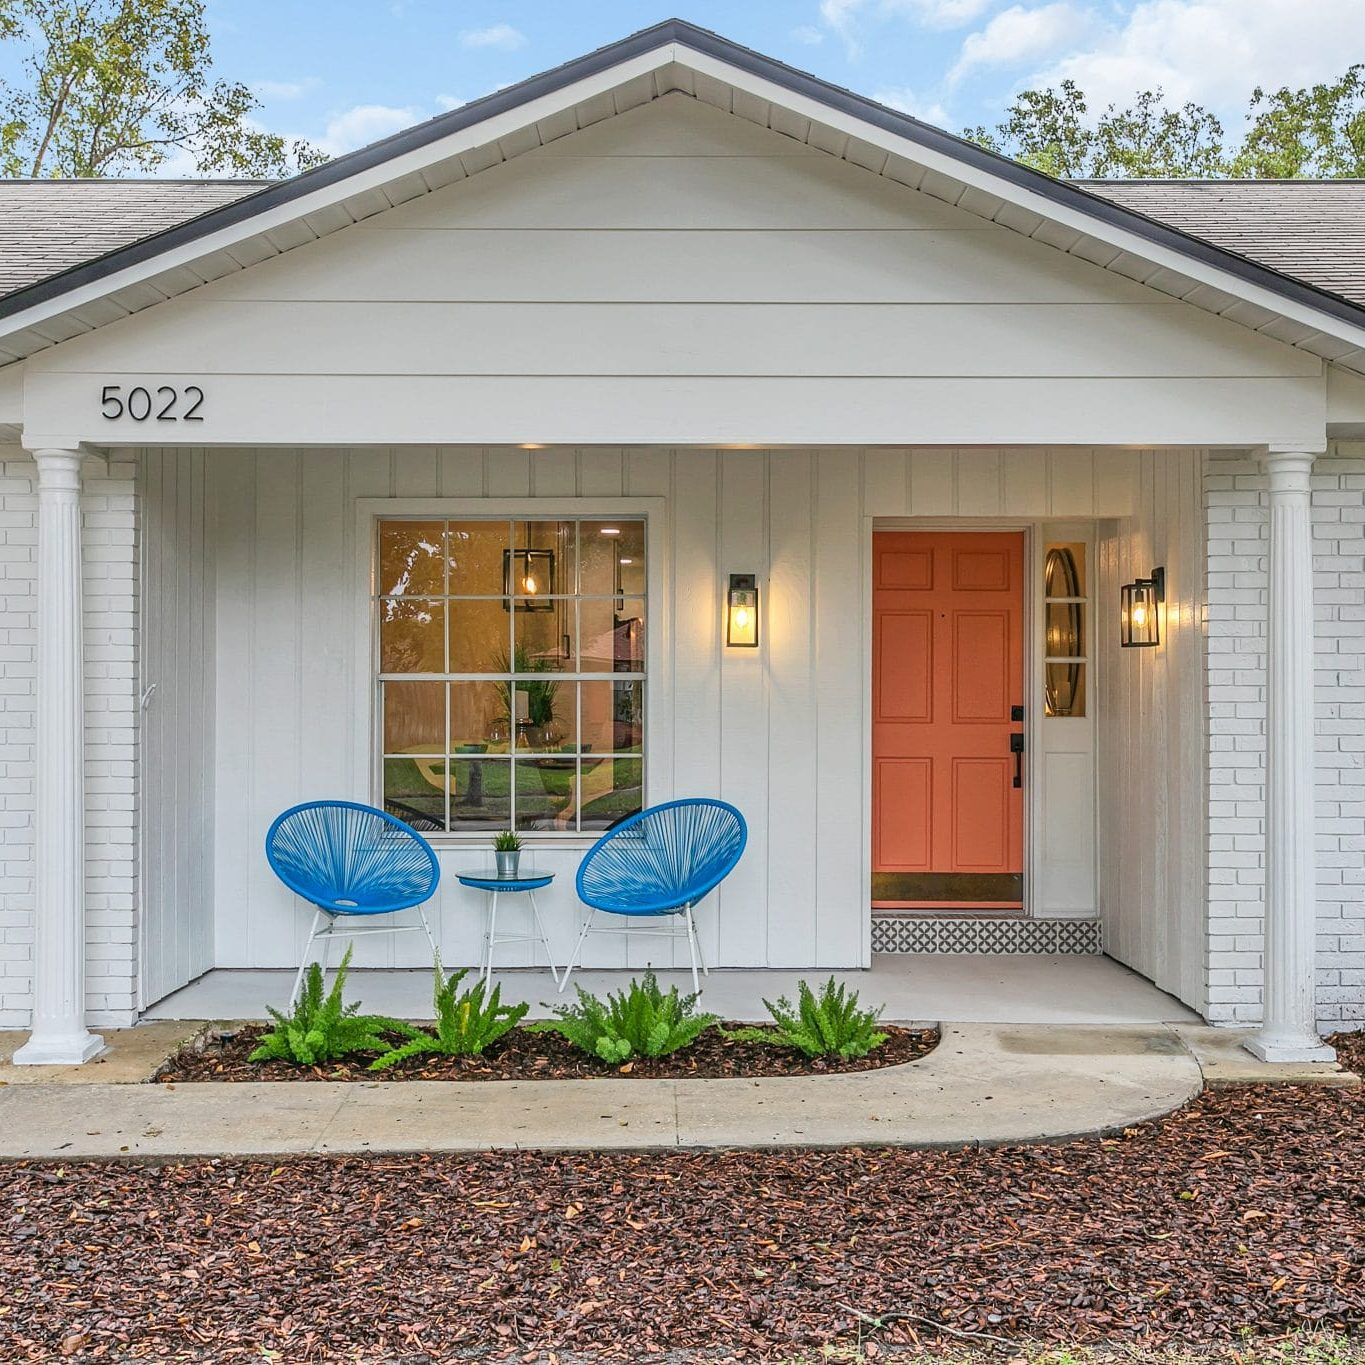 Orlando Home Staged by MHM Professional Staging with orange front door and outdoor blue chairs